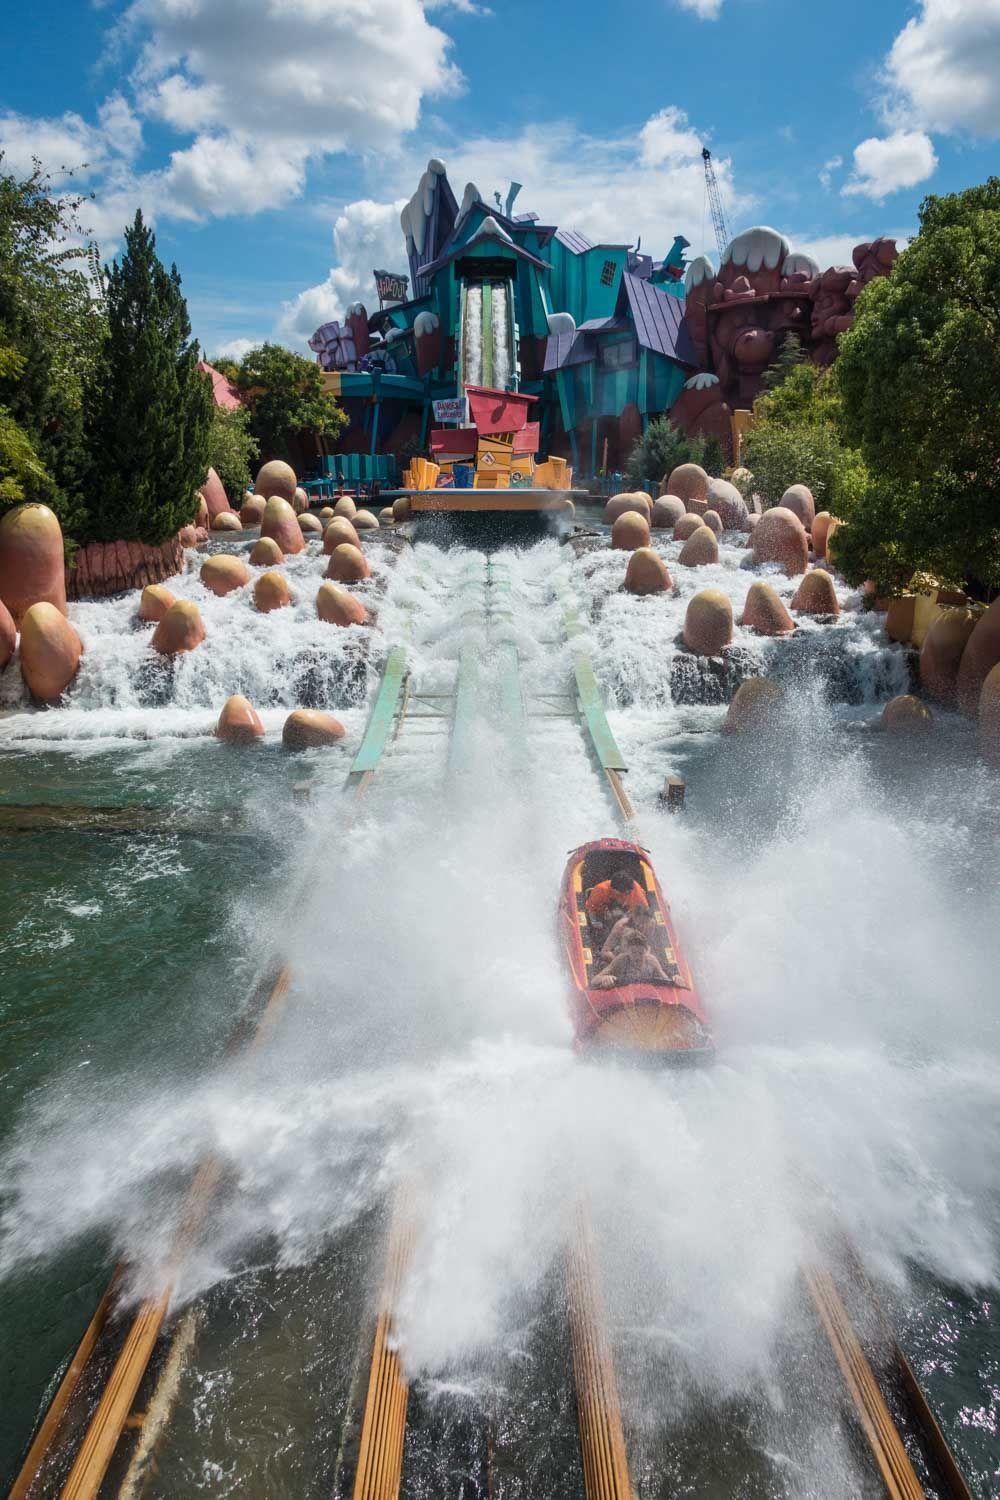 The Best And Worst Rides And Attractions At Universal Studios Florida Universal Studios Orlando Trip Universal Vacation Universal Studios Florida